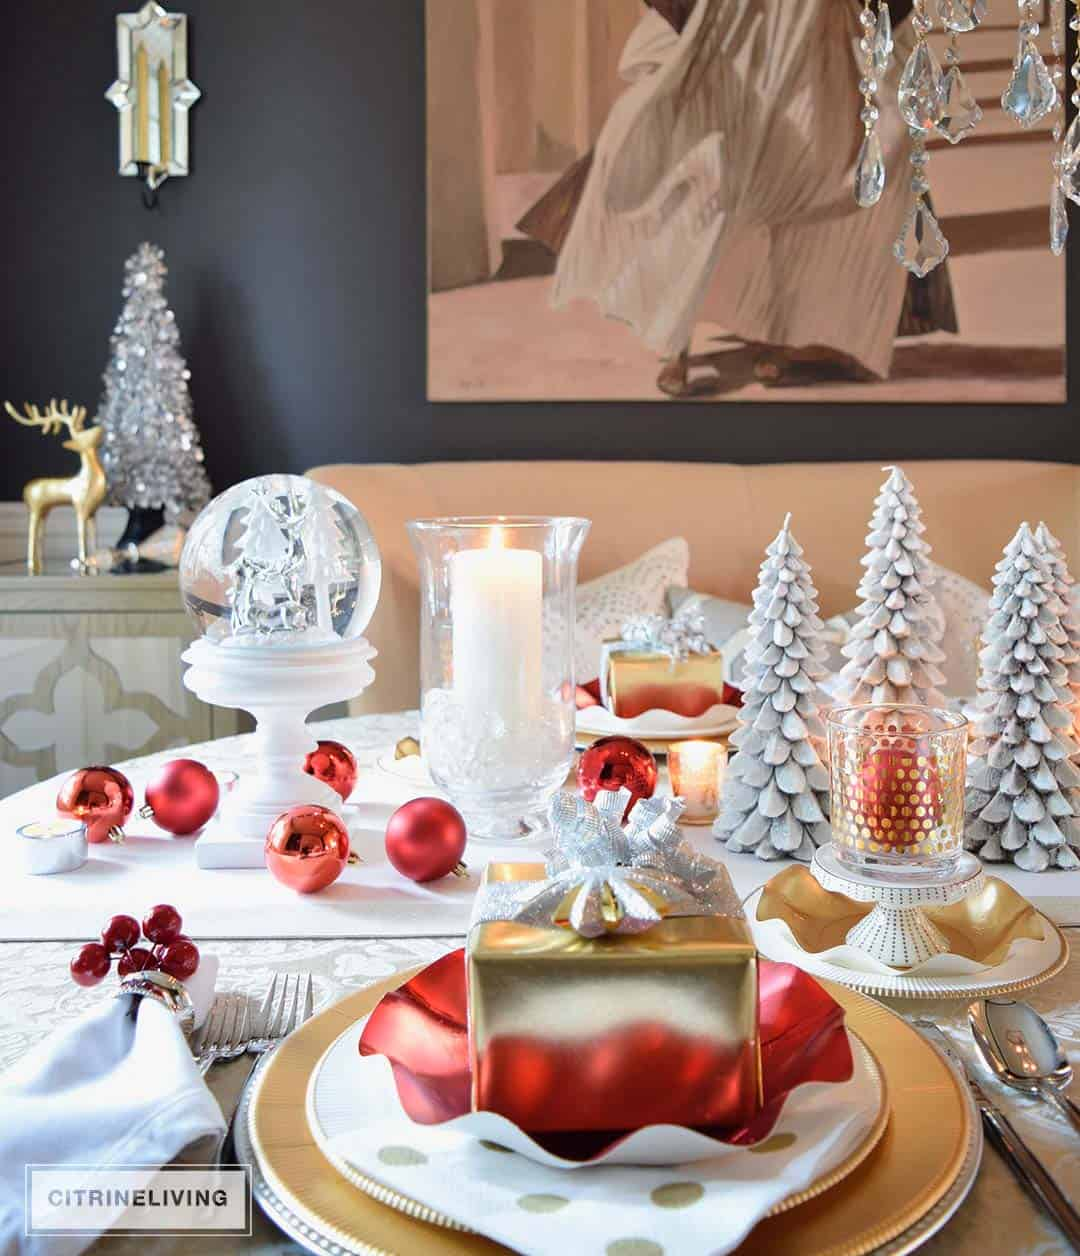 Fun Christmas Table Decorations: 30+ Absolutely Stunning Ideas For Christmas Table Decorations